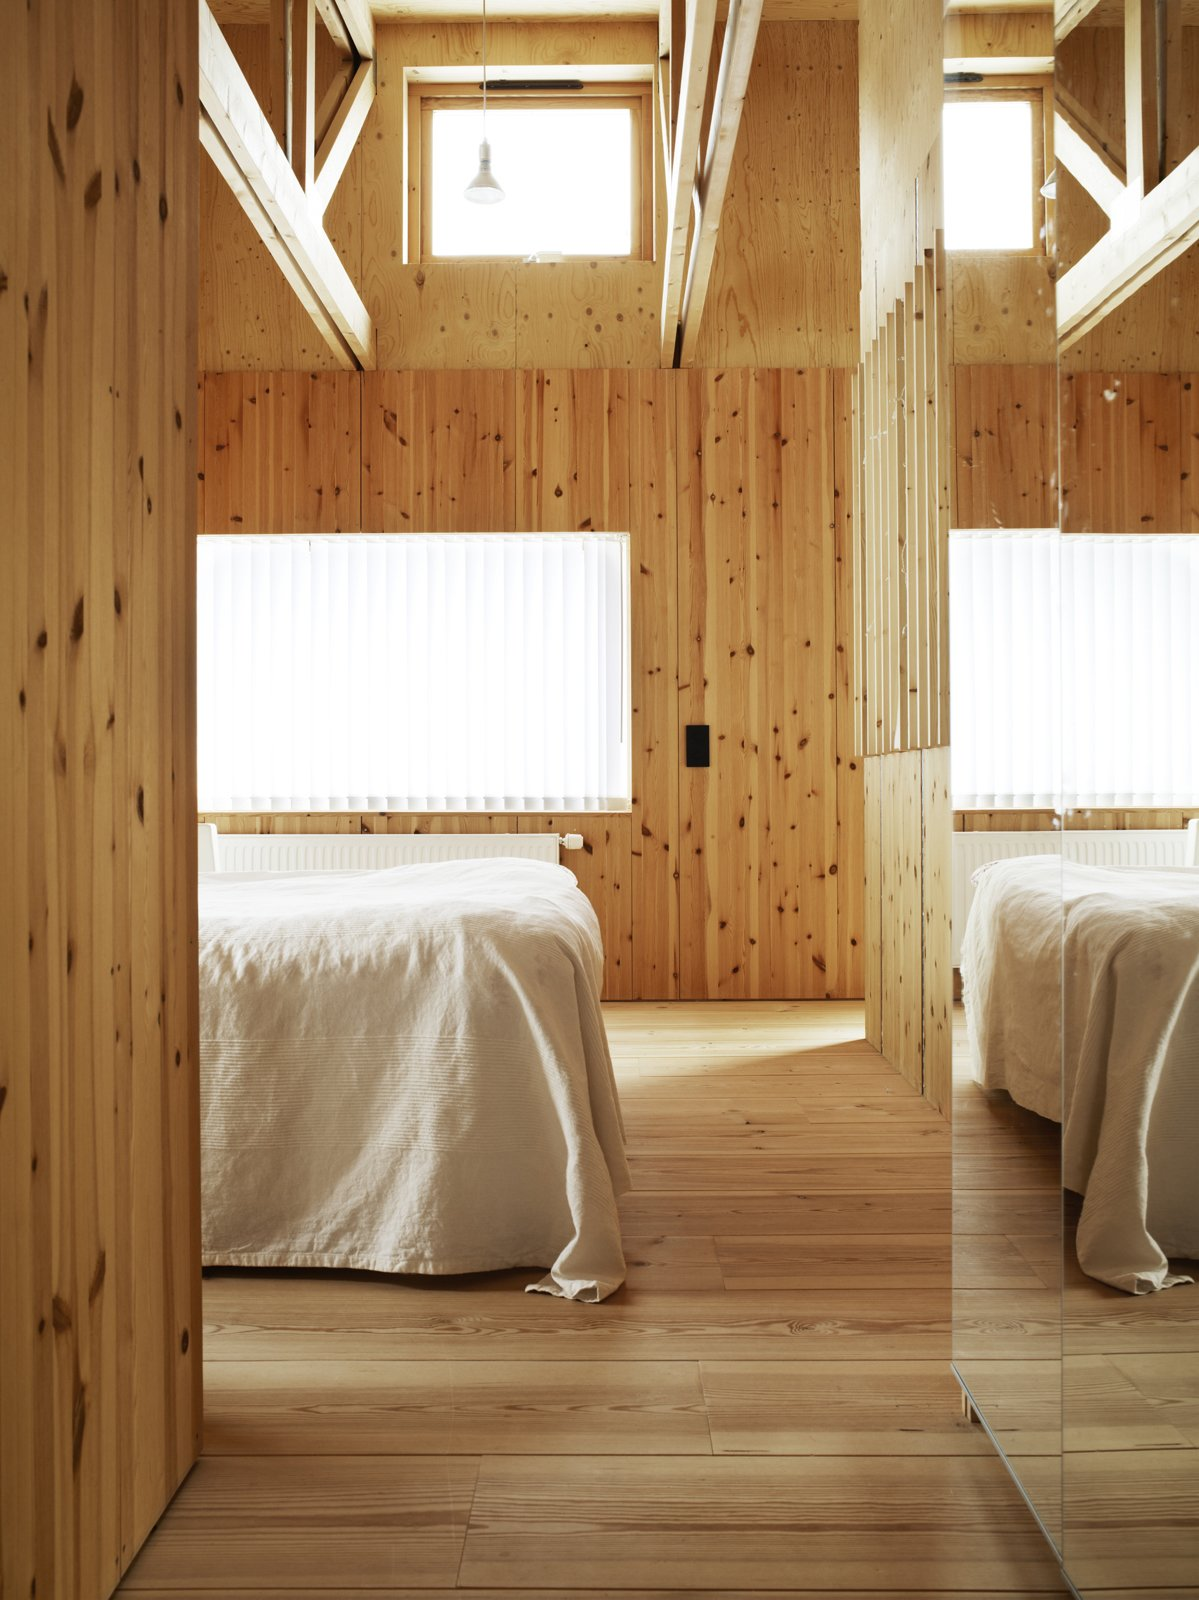 Bedroom, Light Hardwood Floor, Bed, and Pendant Lighting The white linens appear almost ghostly against the natural grain of the wood and muted glow of the window's winter light.  Photo 9 of 11 in 10 Warm Wood Floors from Knotty by Nature